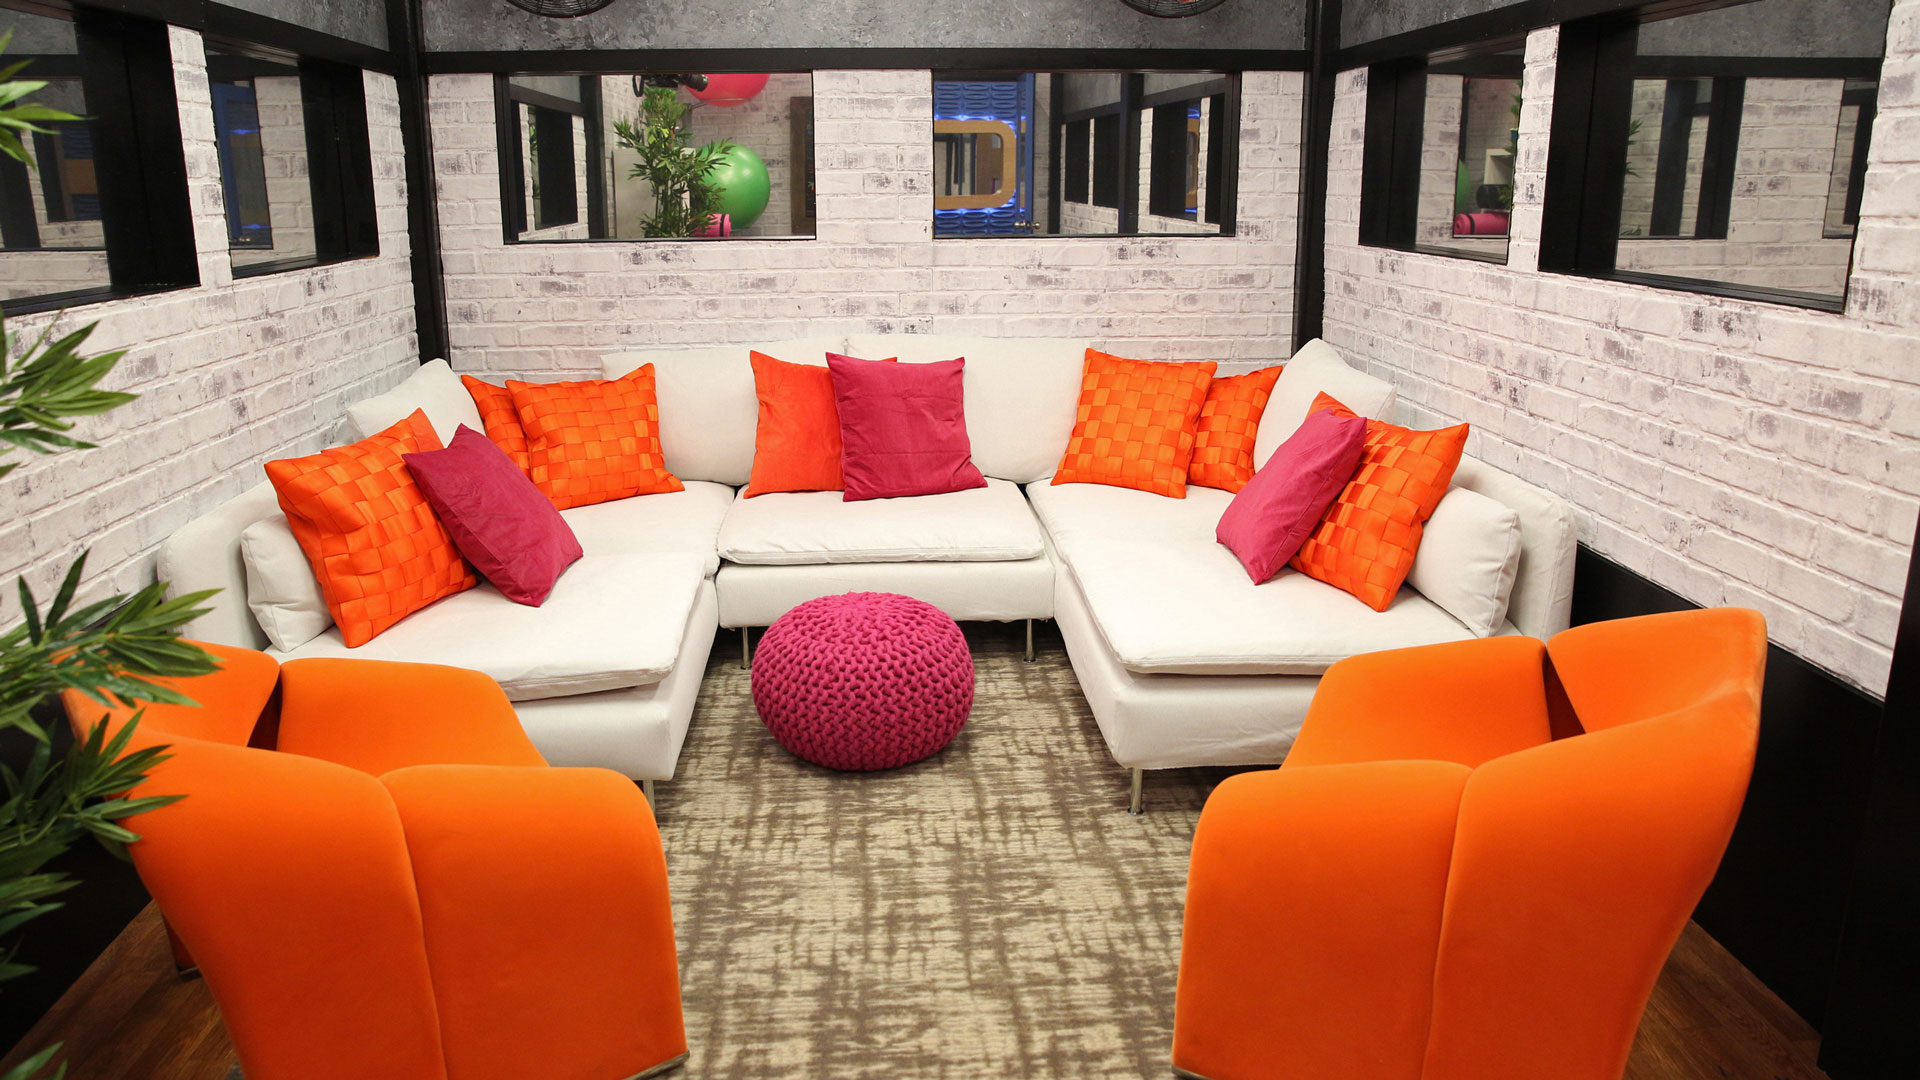 This vibrant nook is perfect for Houseguests to kick back or talk strategy.